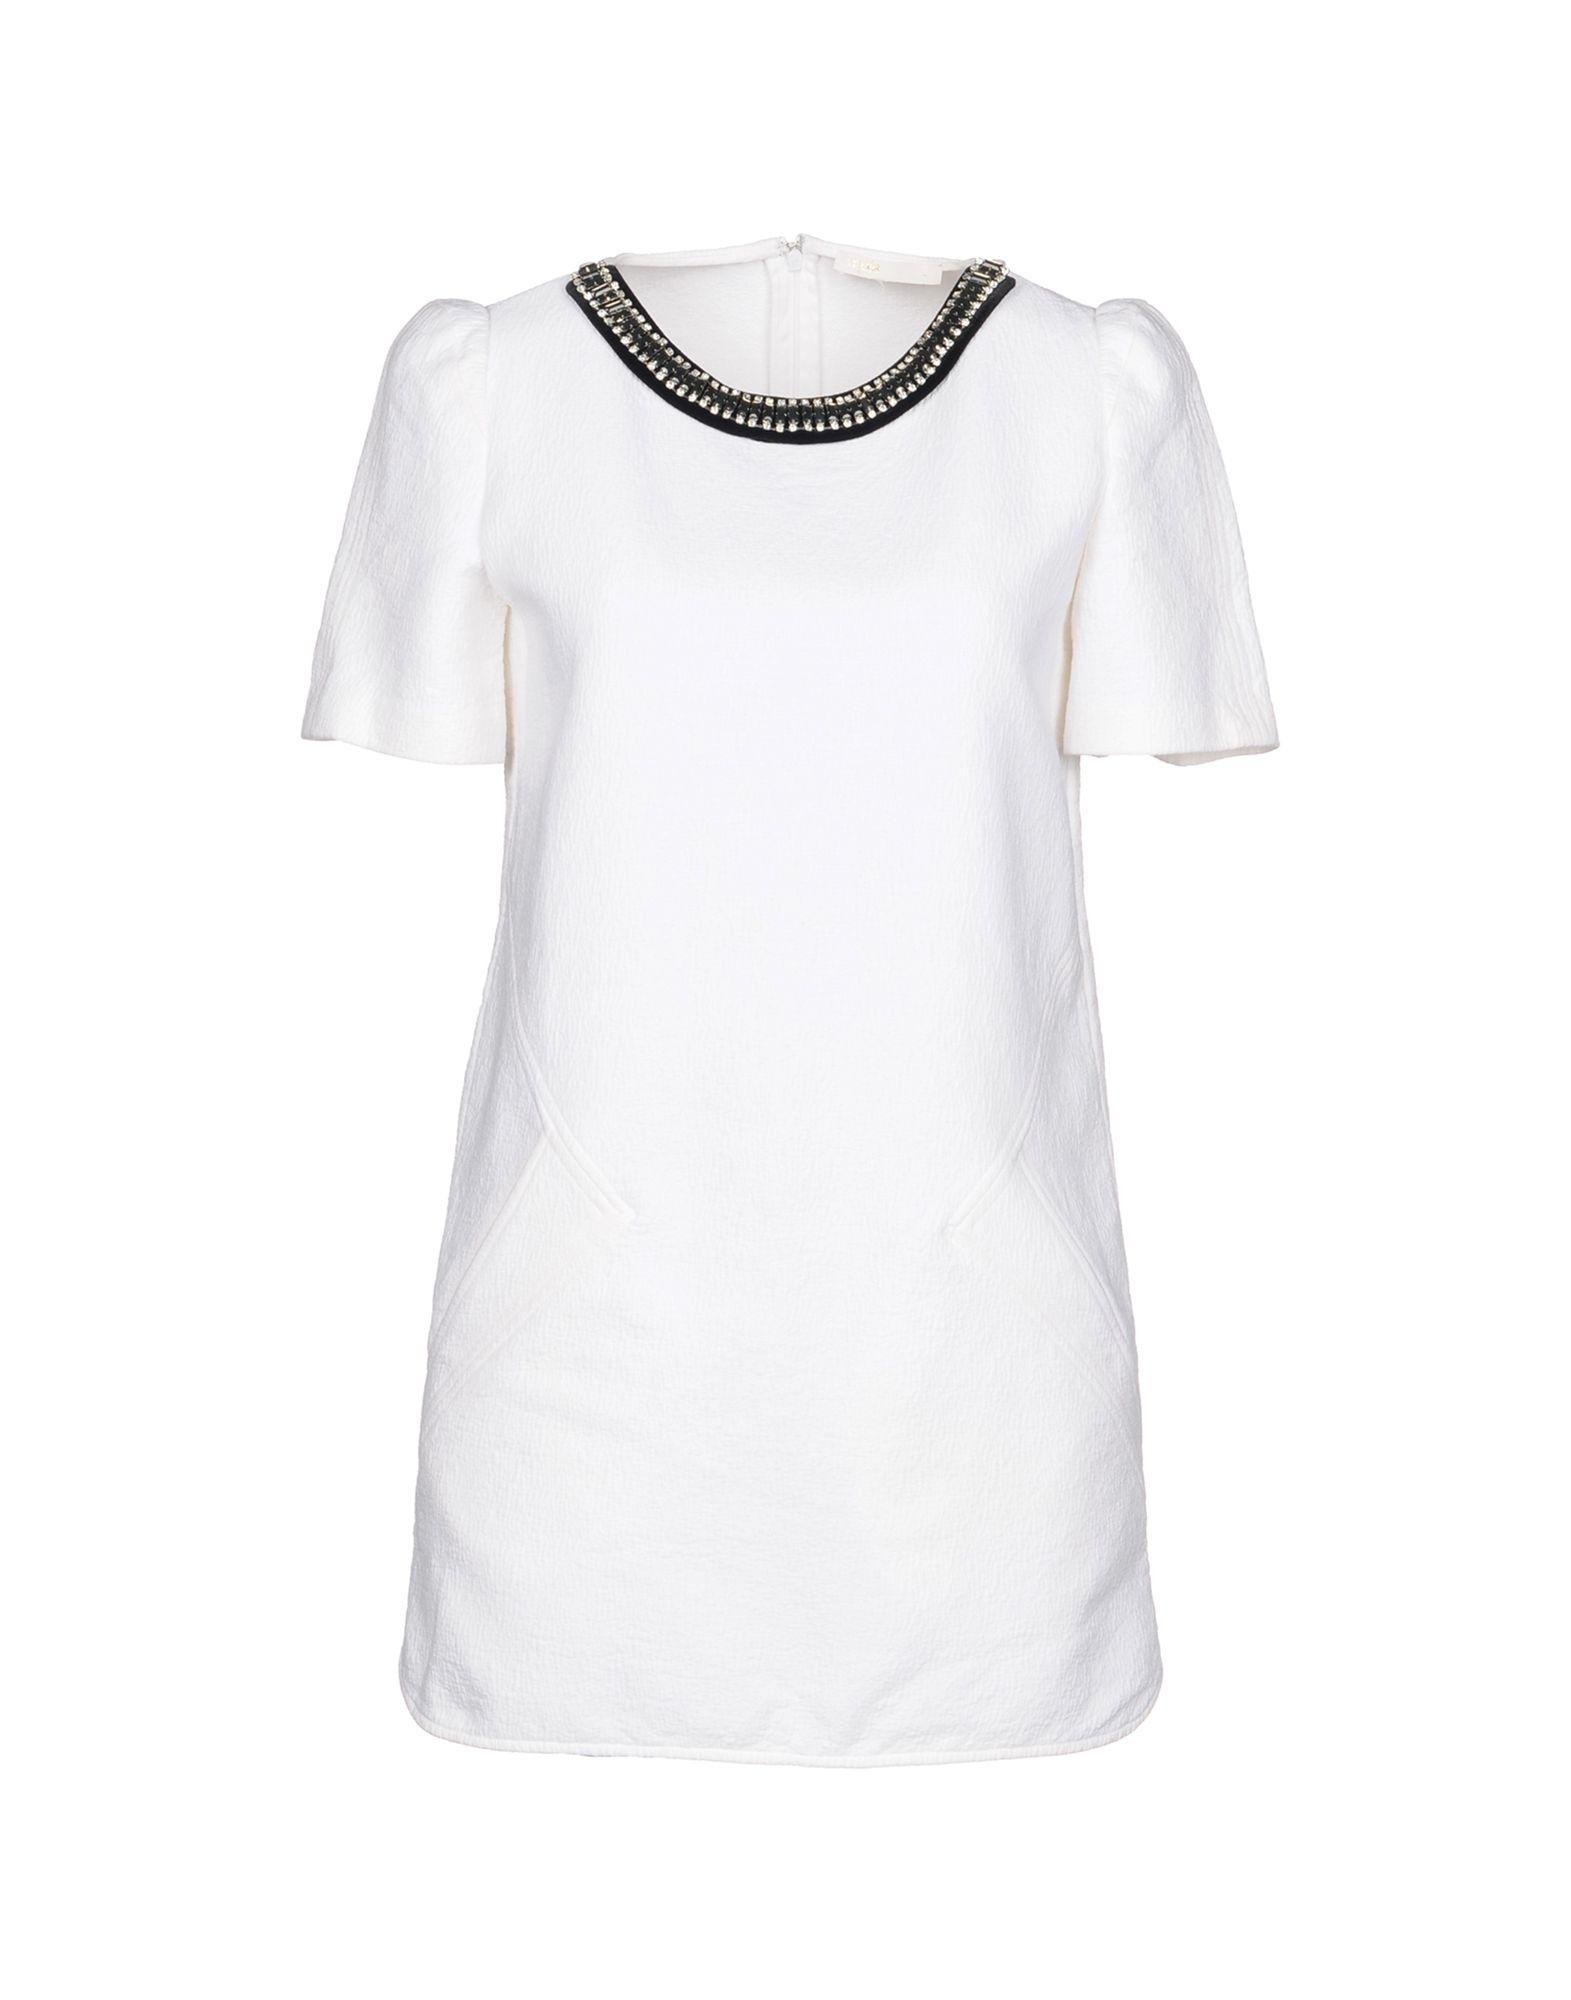 Maje Blouses In Ivory